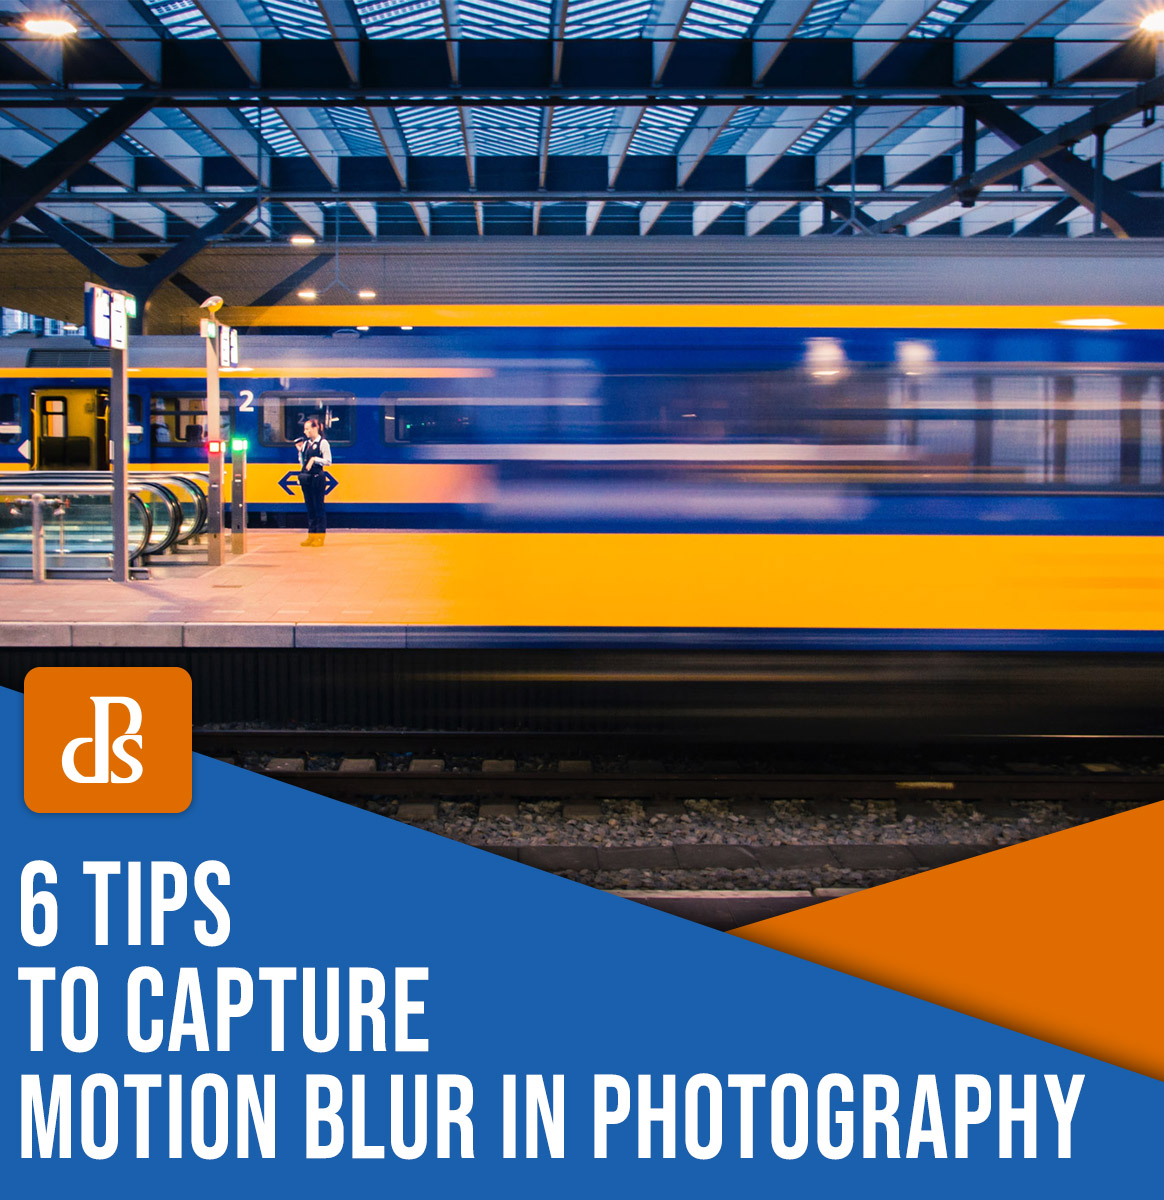 capture motion blur in photography